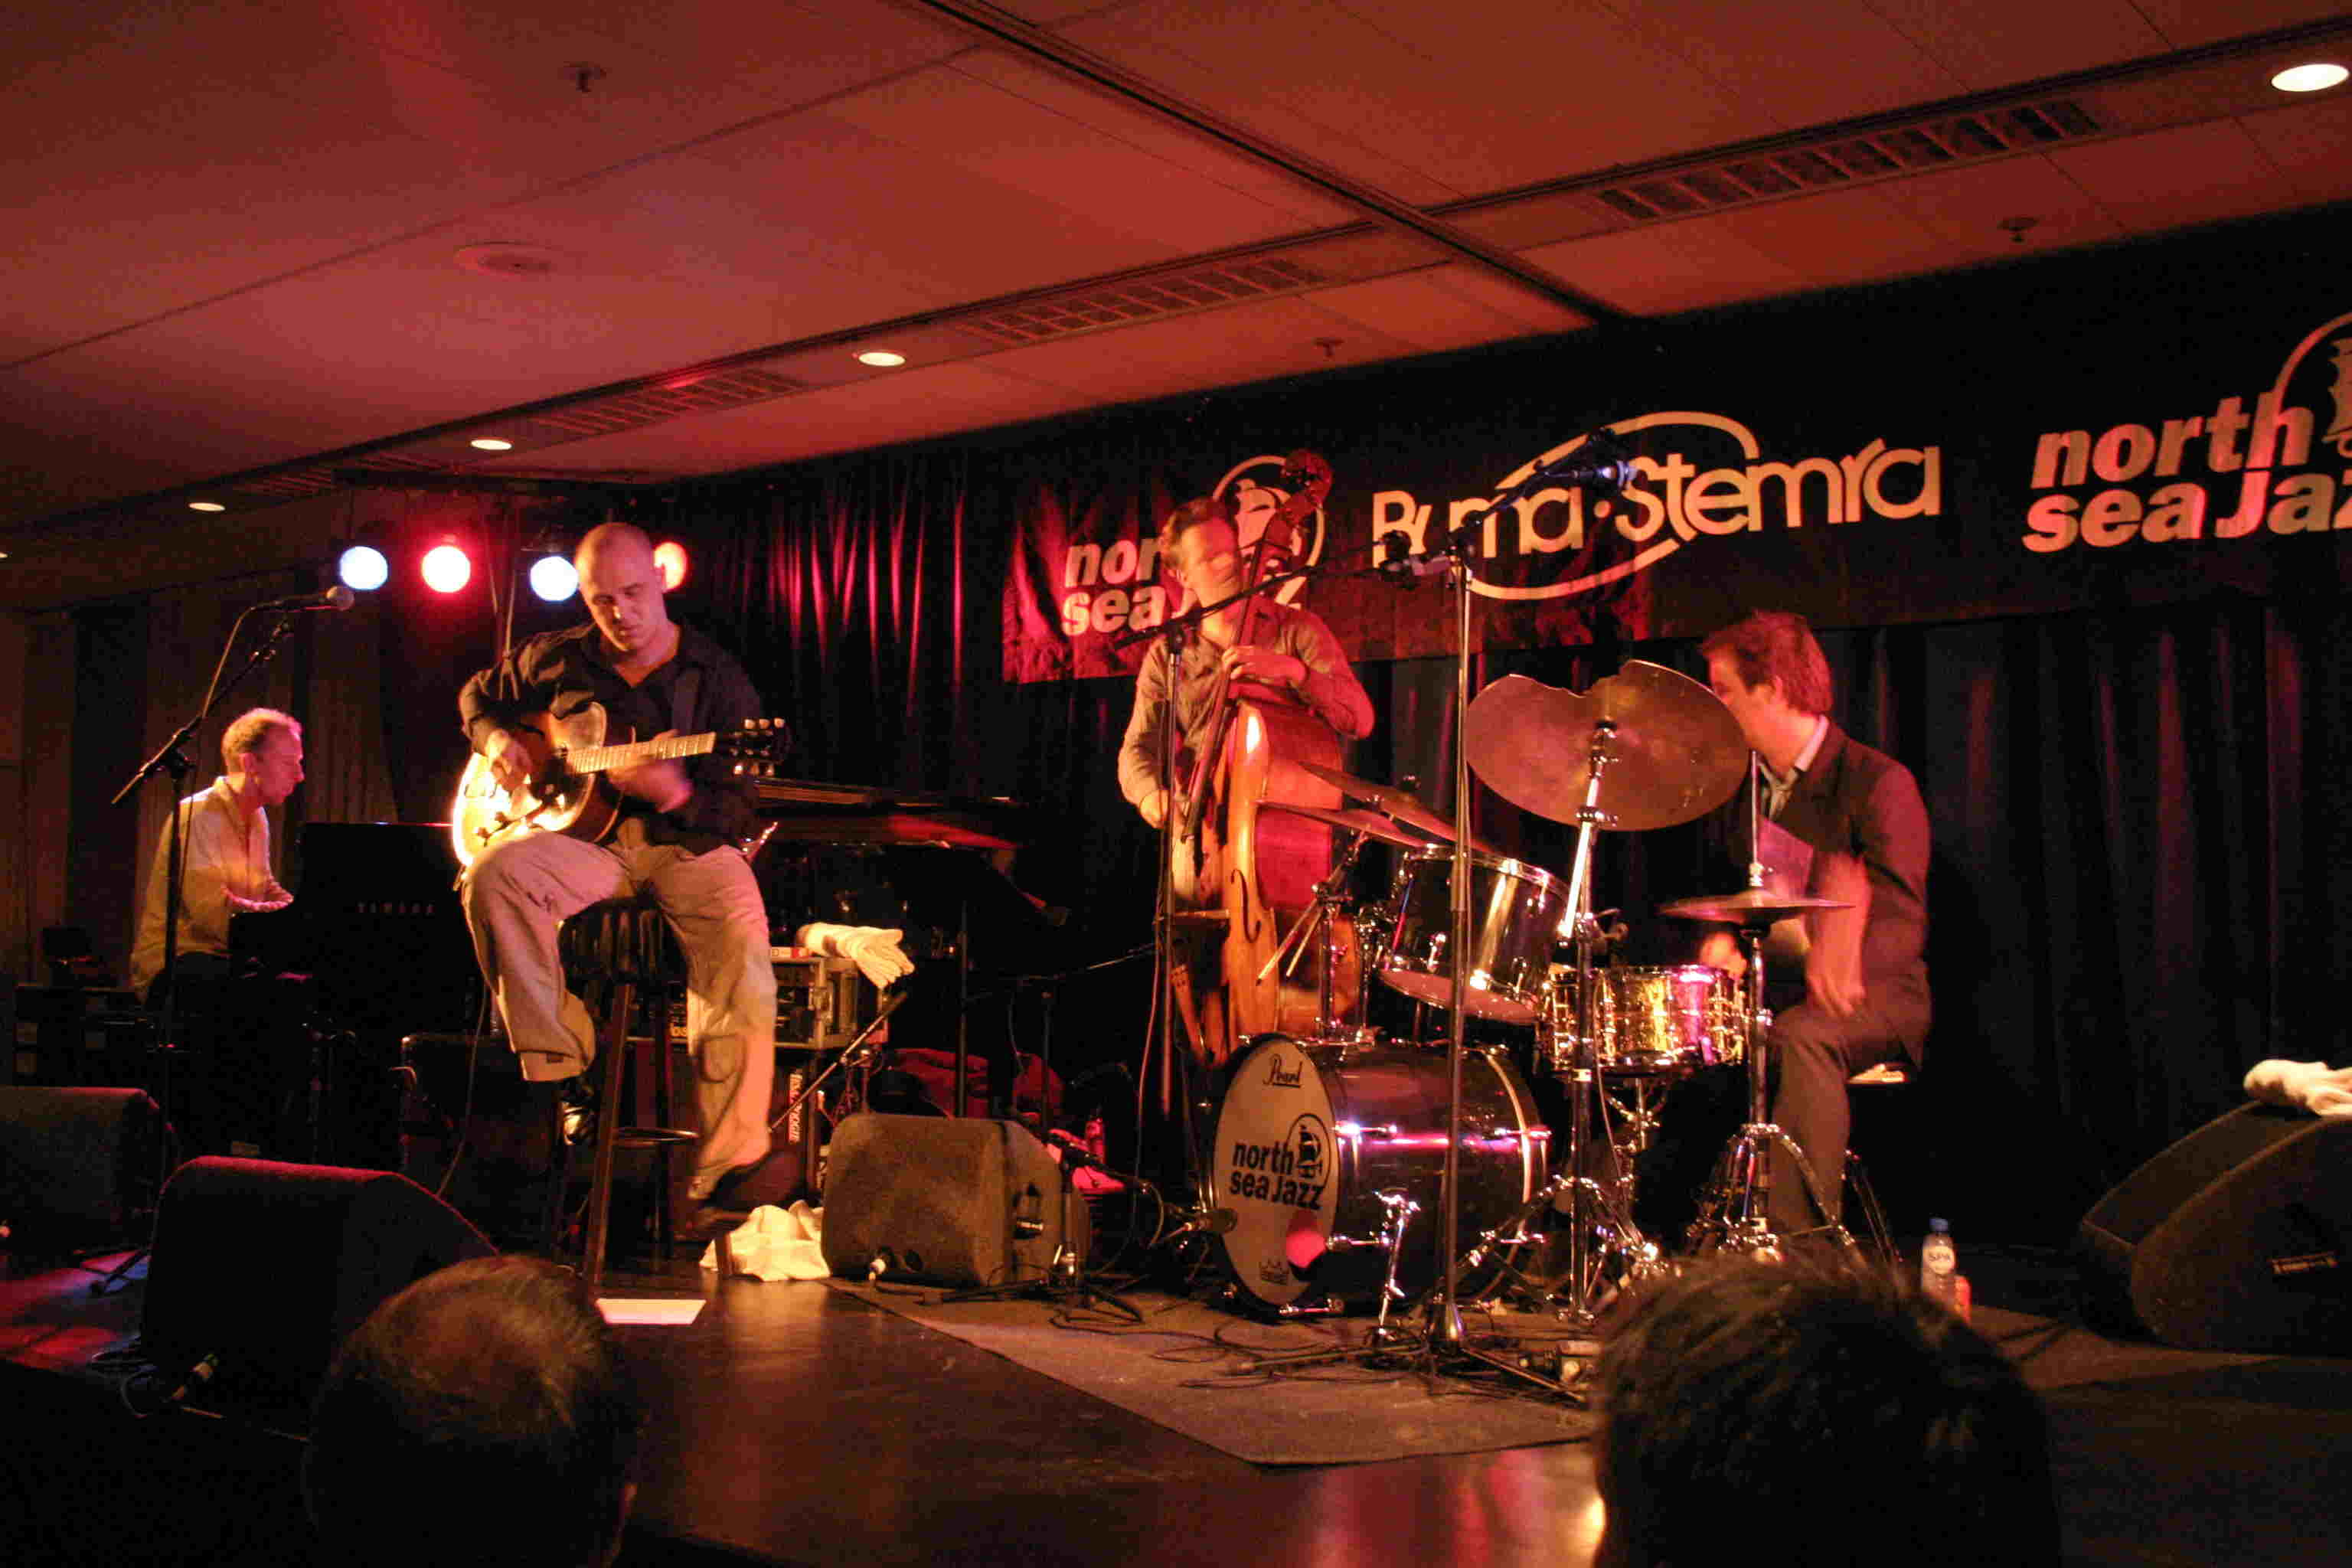 Martijn van Iterson 4-tet North Sea Jazz Festival 2004